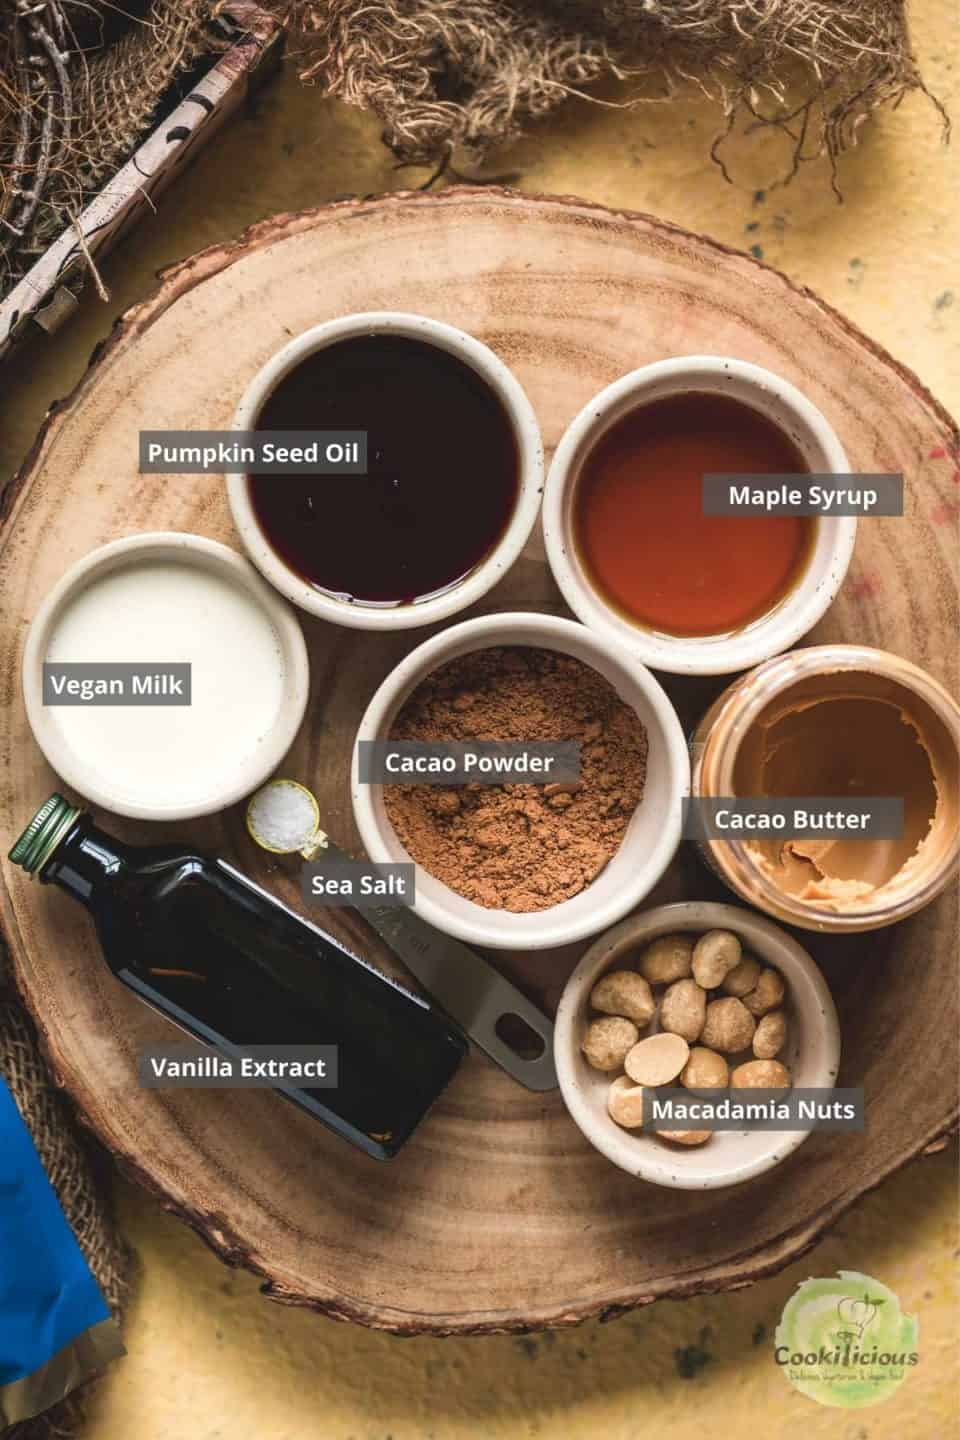 all the ingredients needed to make Vegan Chocolate Macadamia Bars Recipeplaced on a tray with labels on them